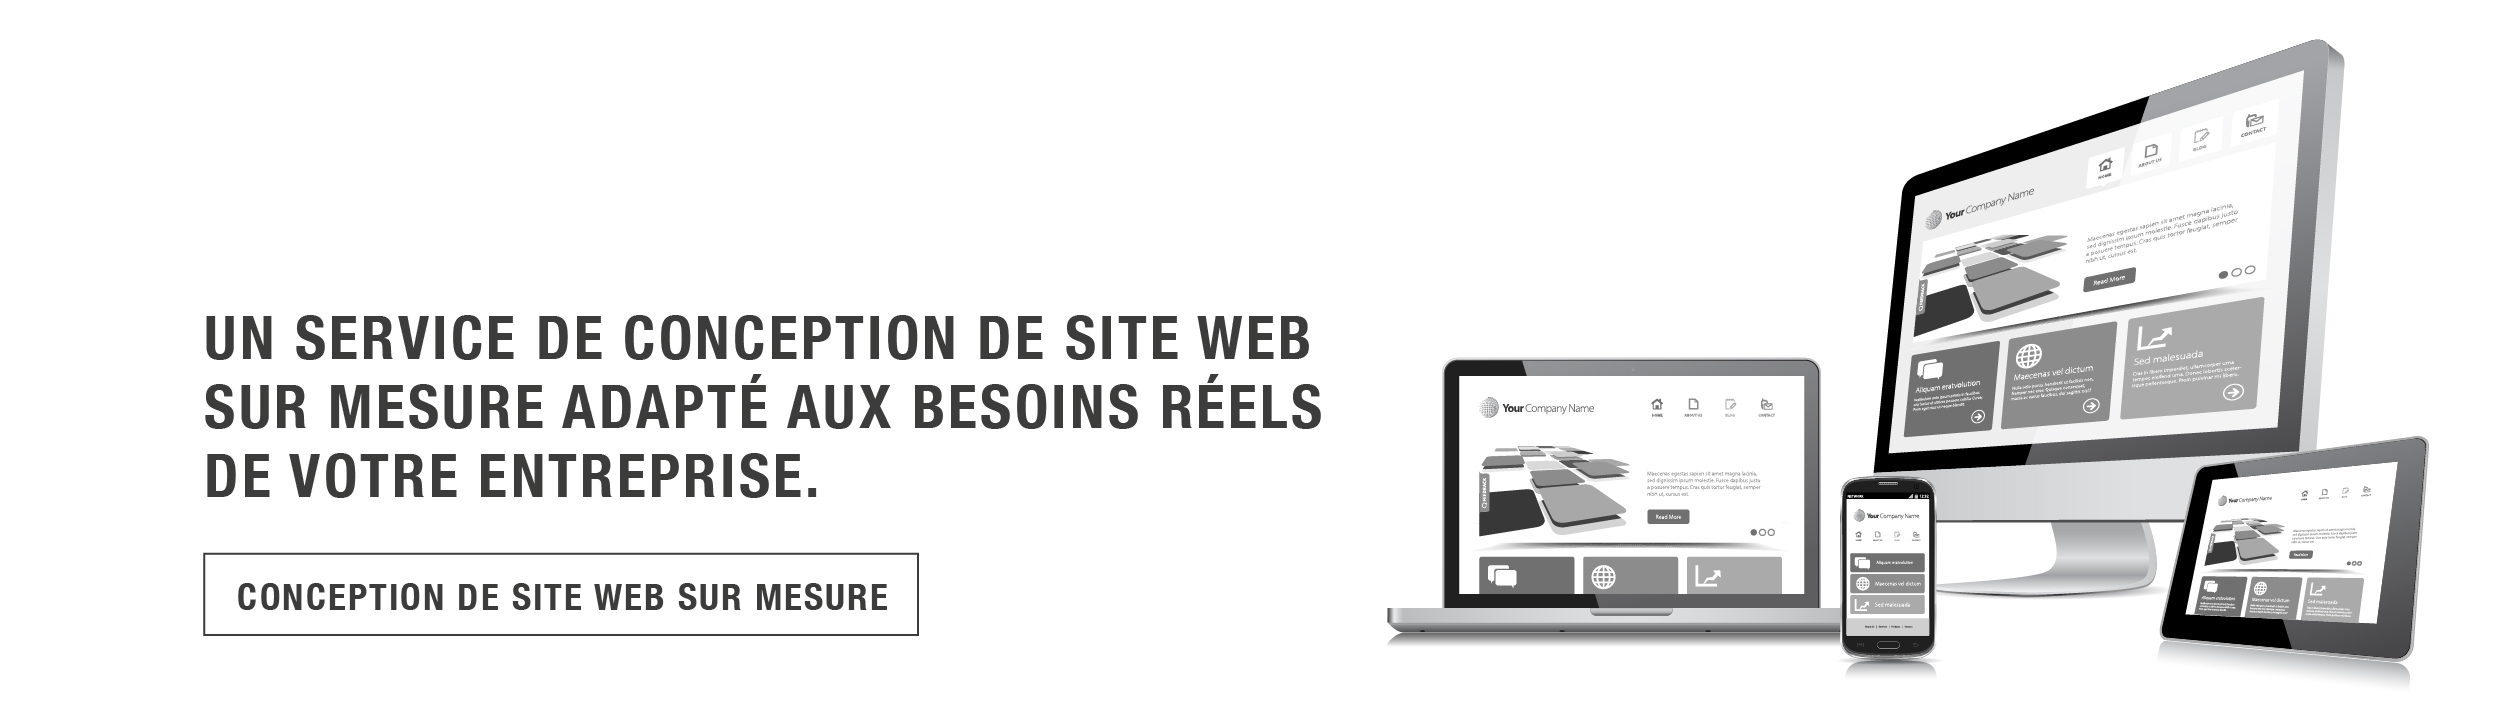 SBinformatique-service-conceptionWeb